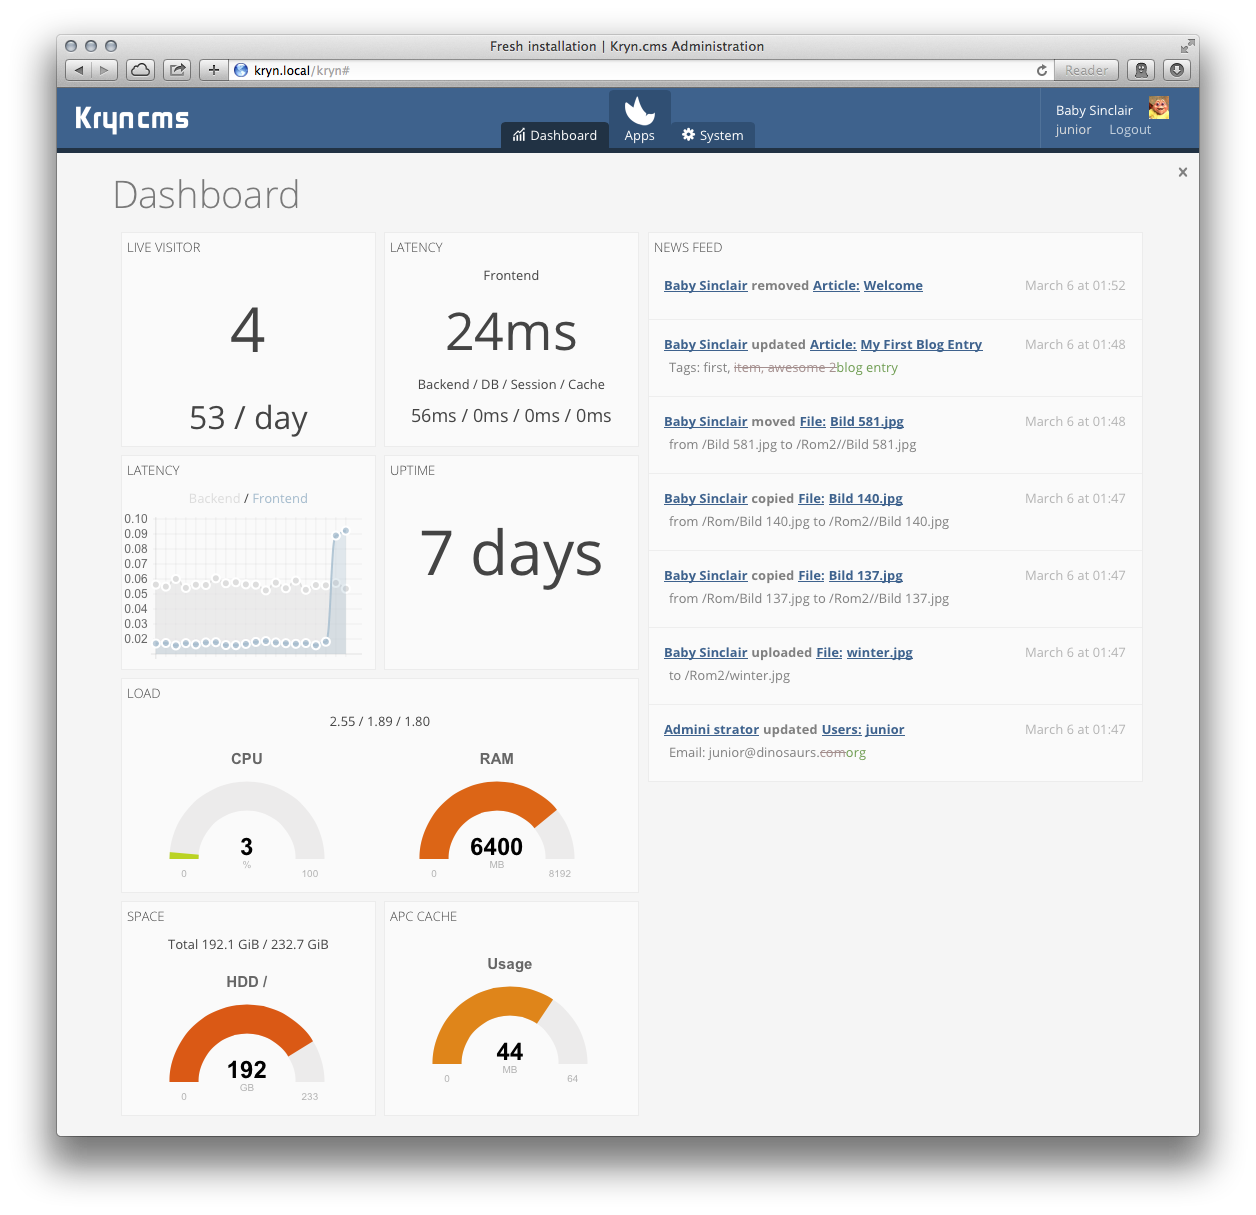 Administration Dashboard